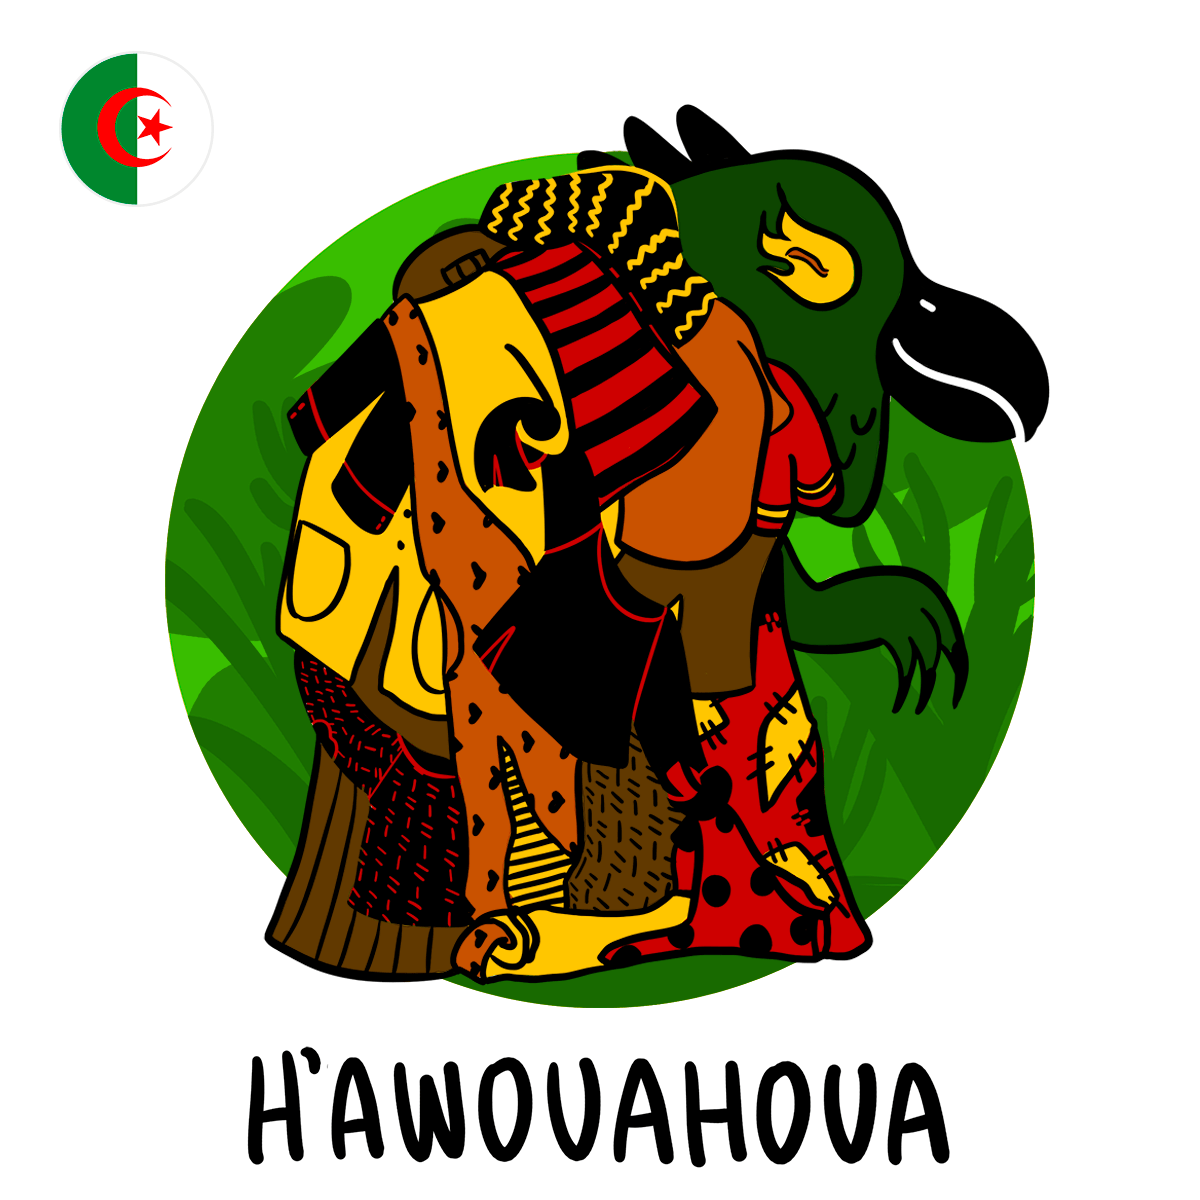 H'awouahoua, illustration of the Algeria boogeyman